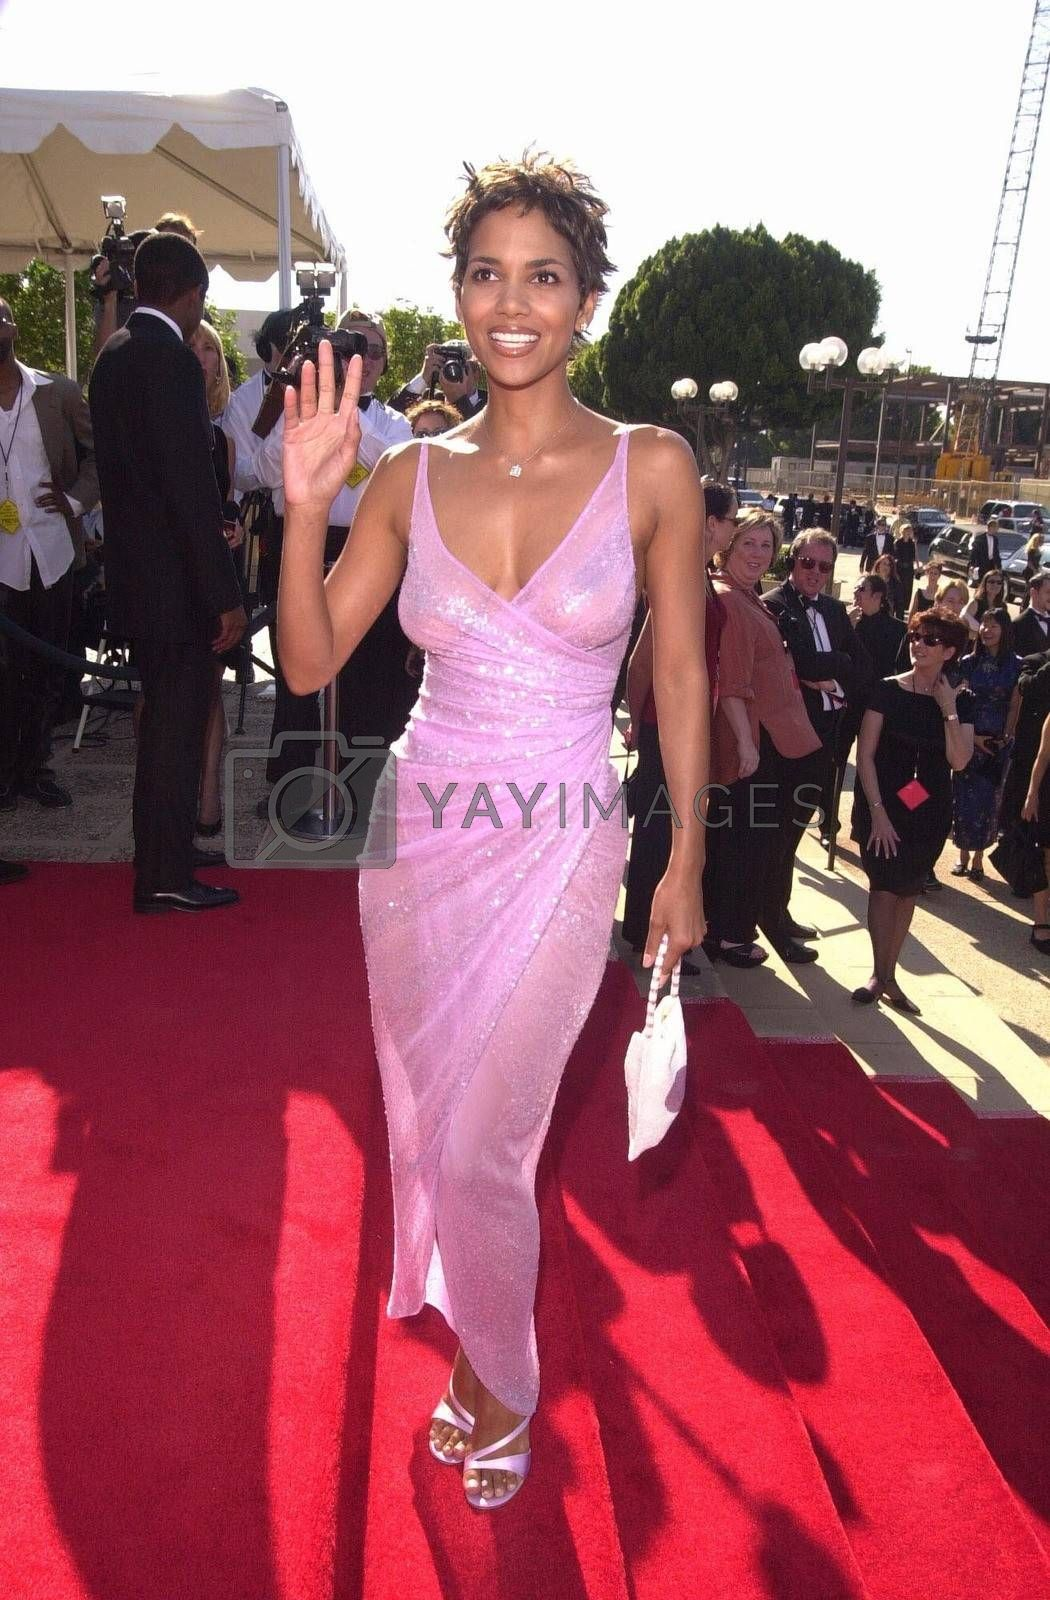 Halle Berry at the Creative Arts Emmy Awards in Pasadena. 08-26-00